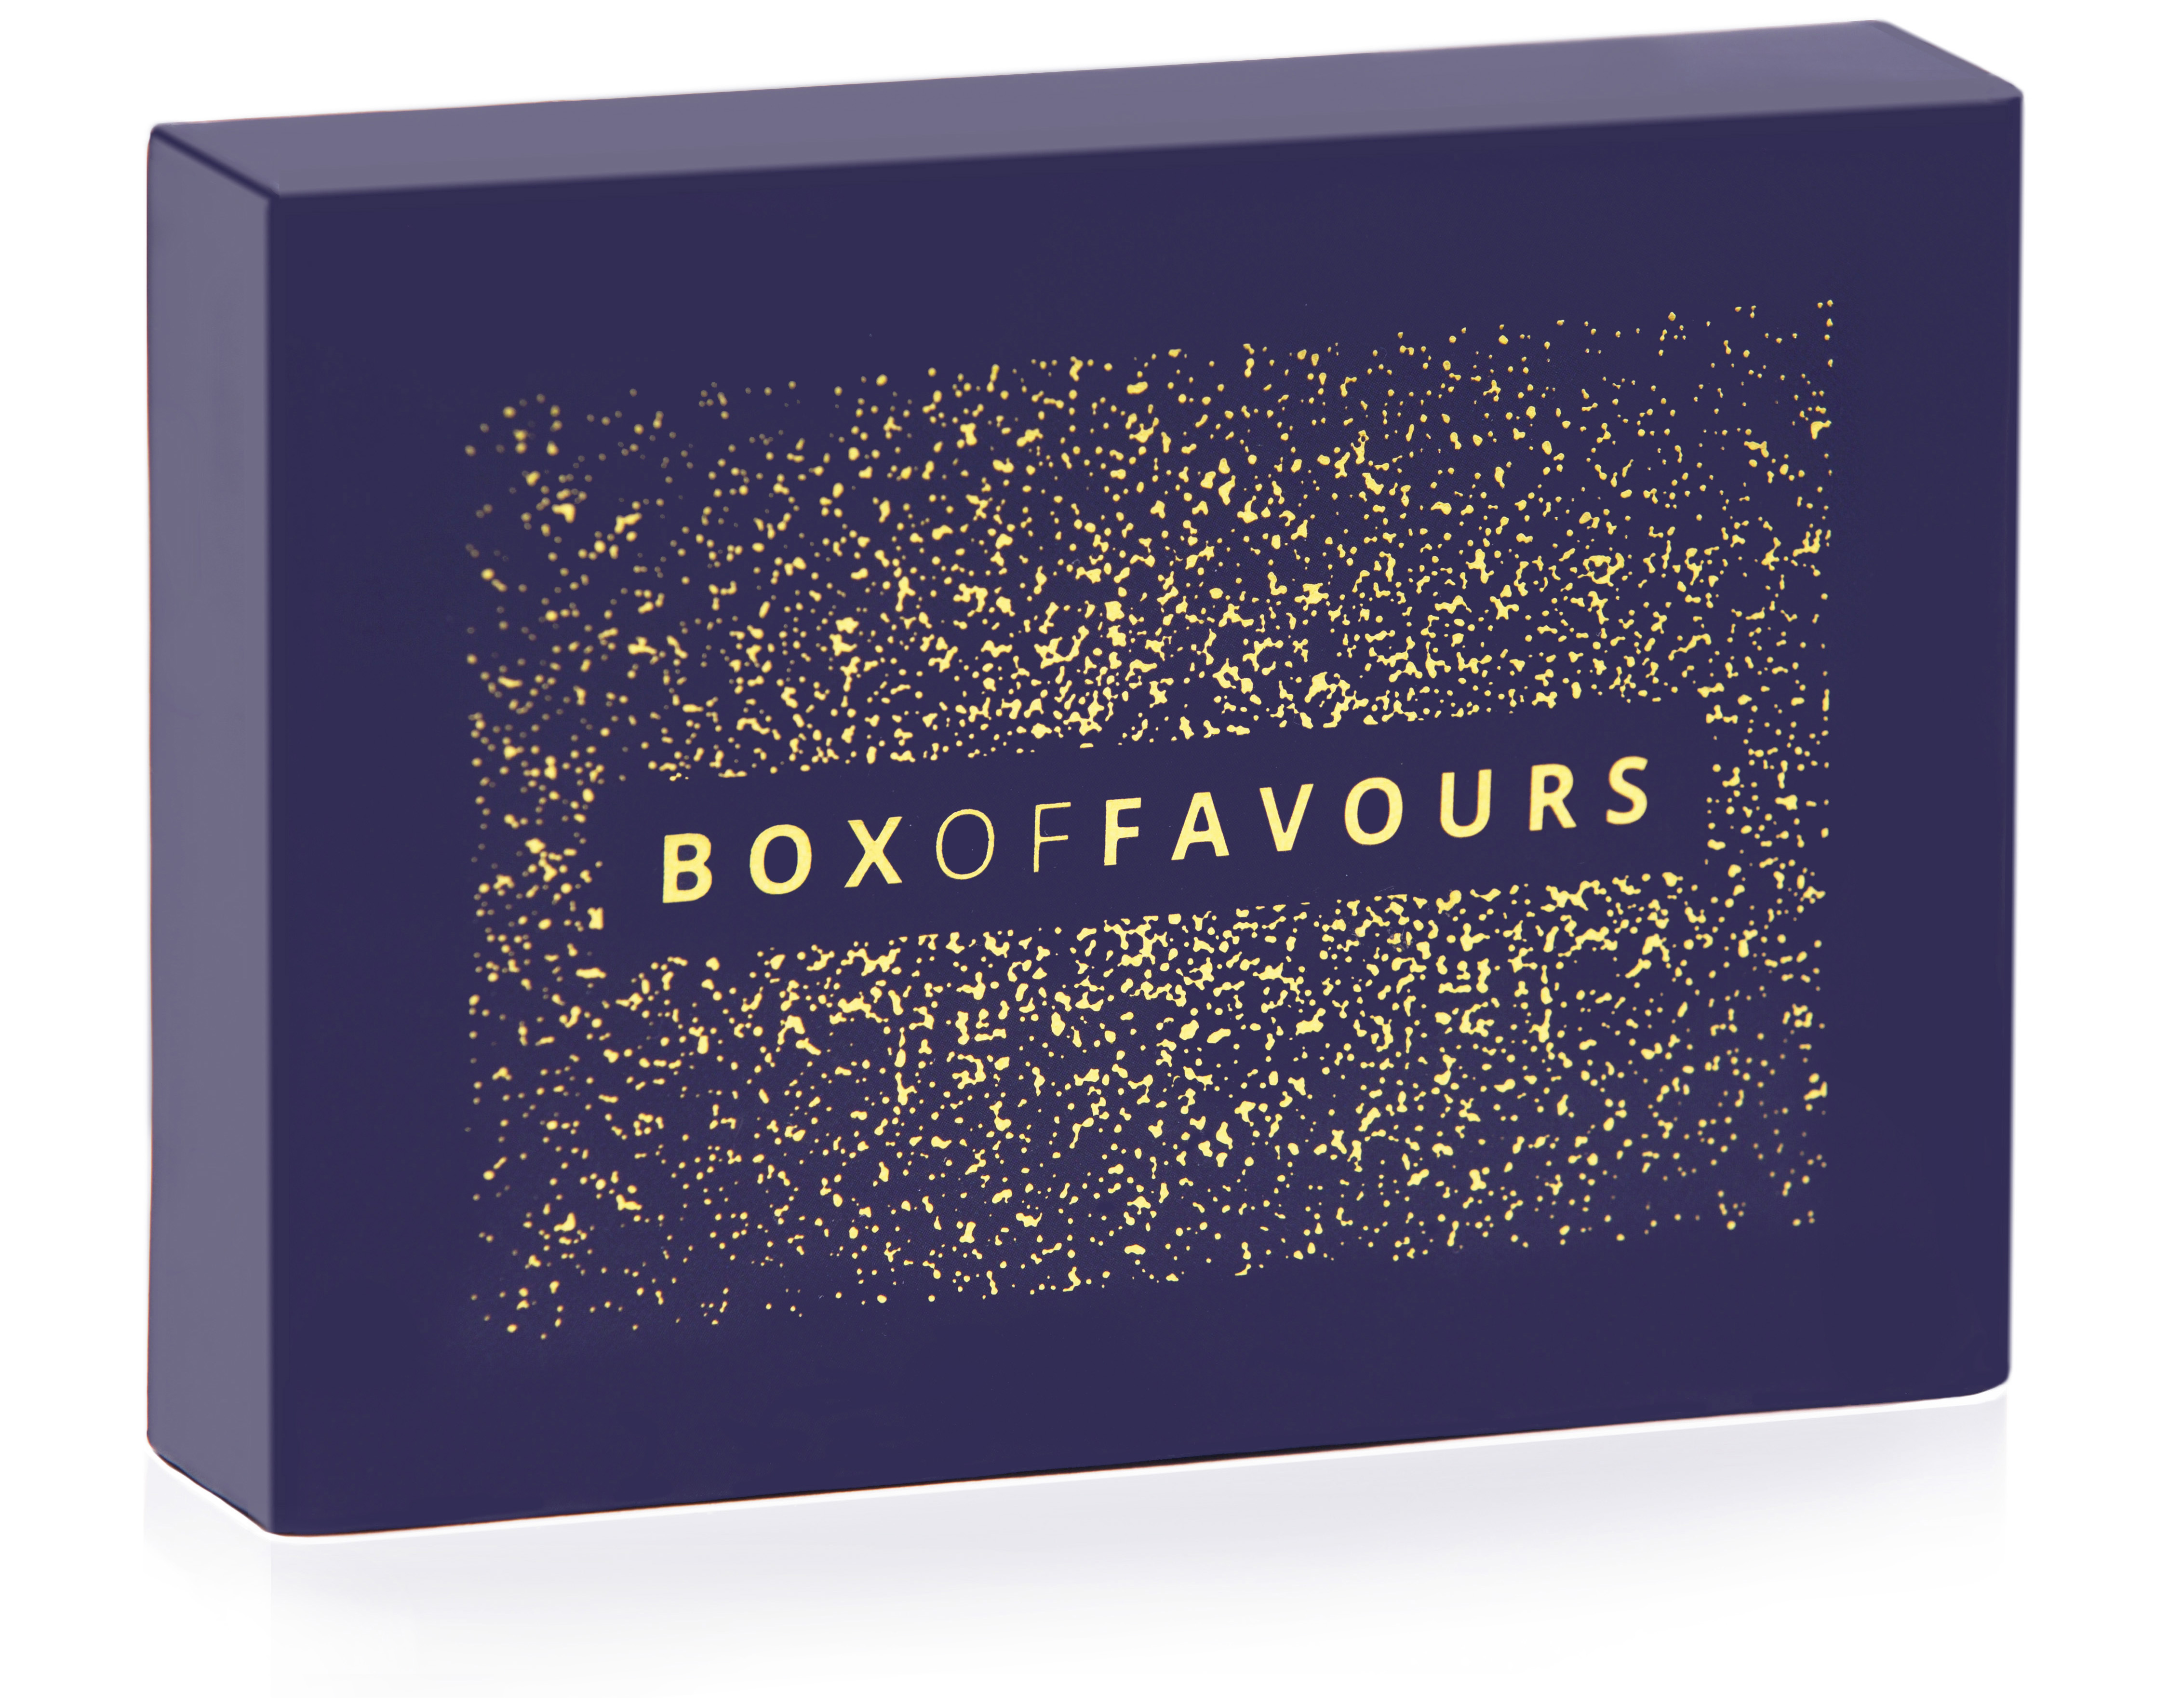 Box Of Favours logo